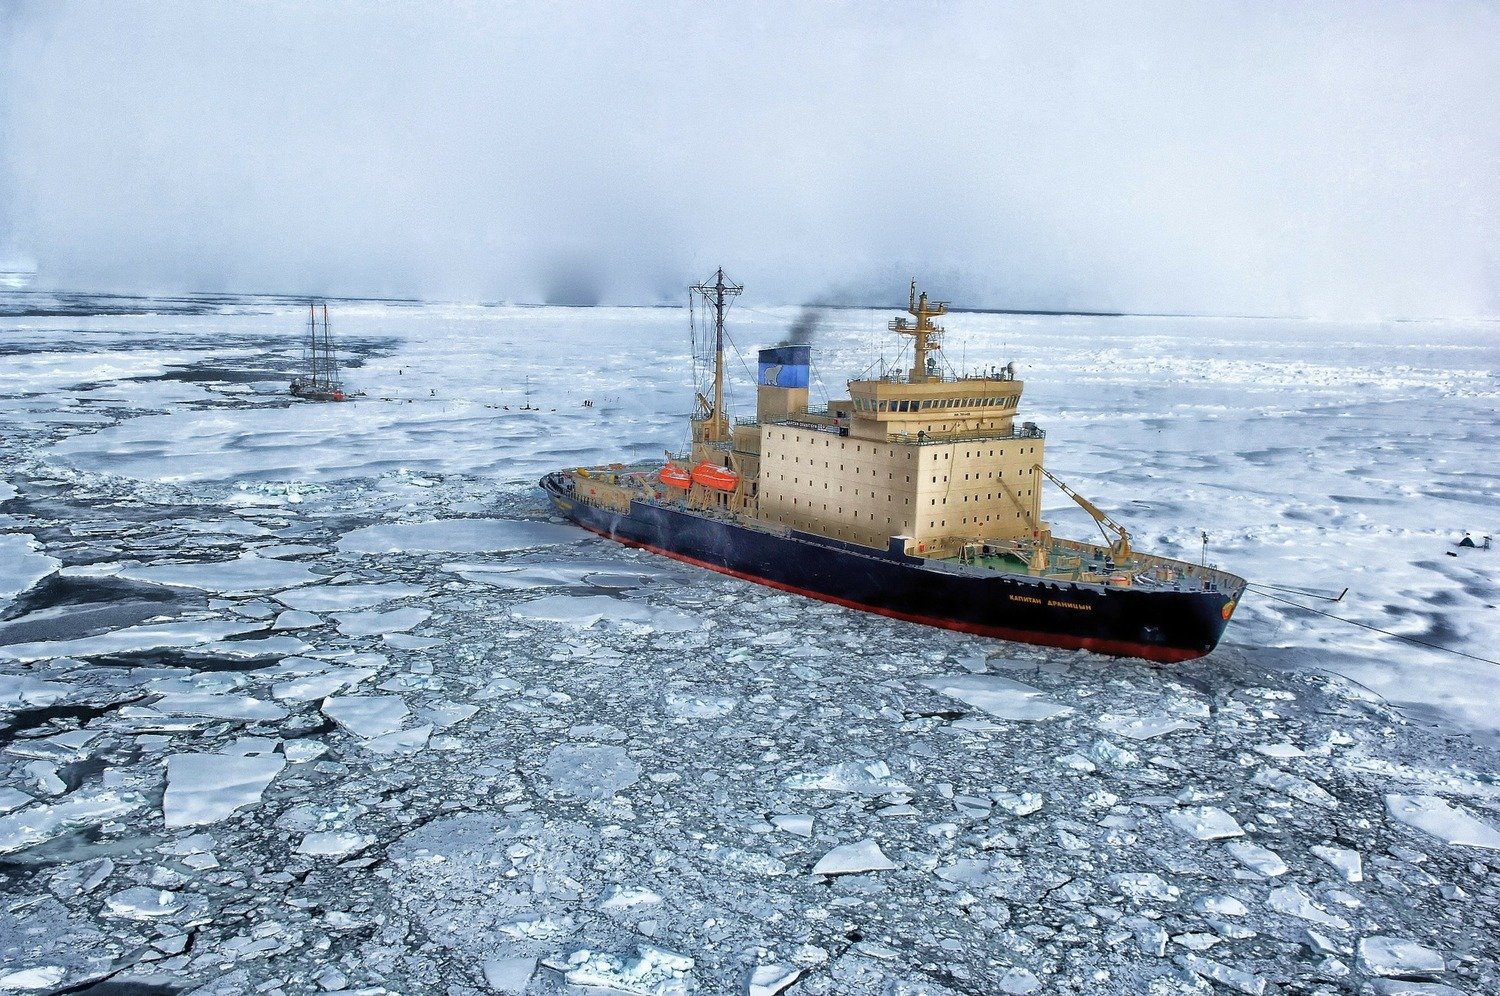 Pollution in the Arctic?